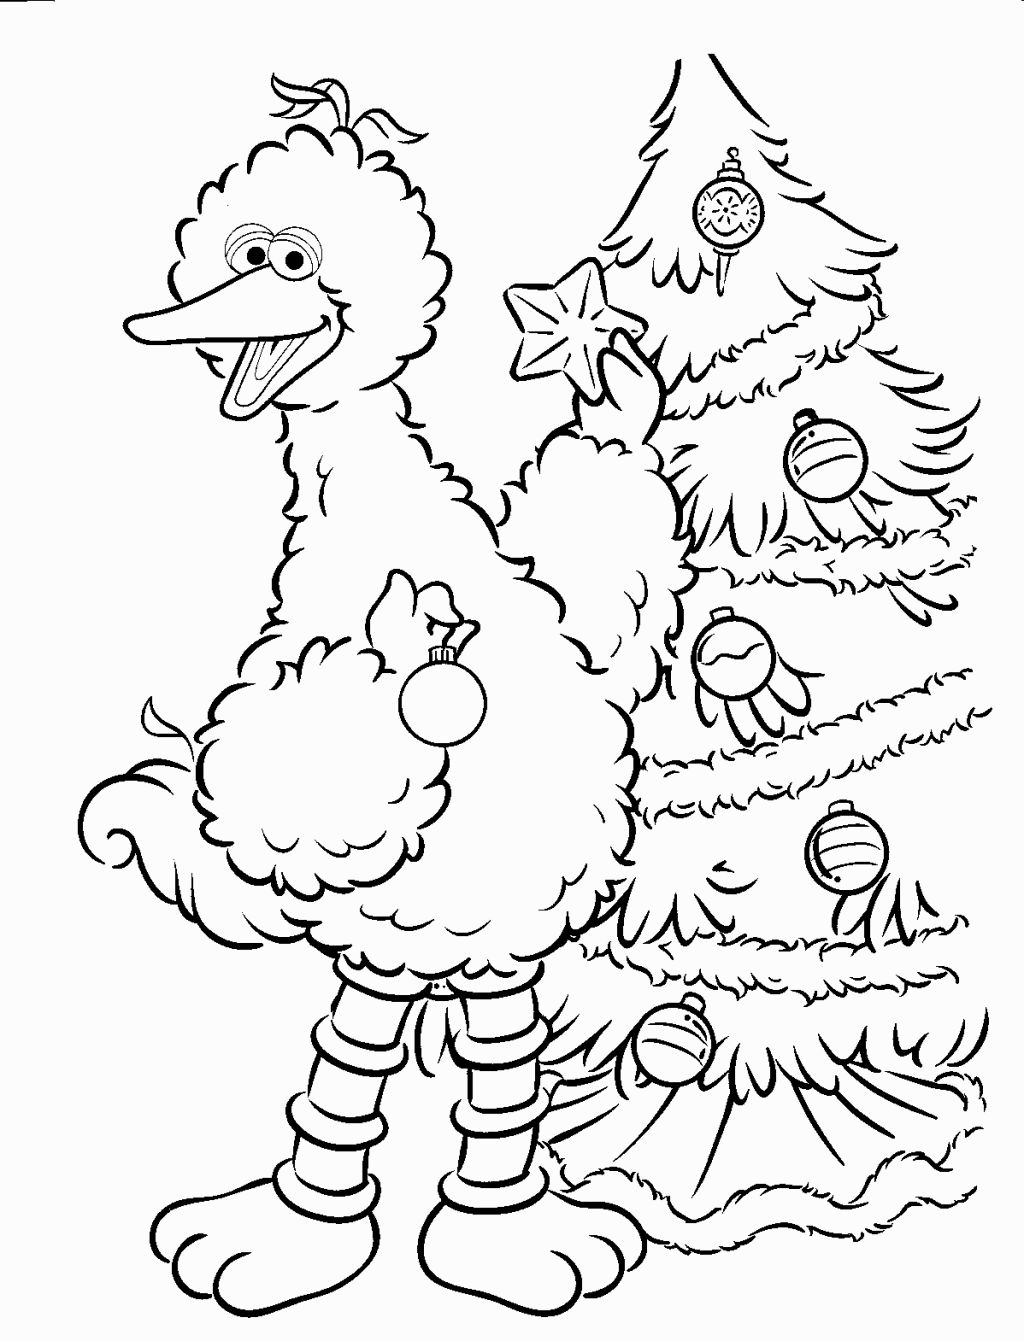 Sesame Street Sign Coloring Page Sesame Street Coloring Sheets Coloring Pages